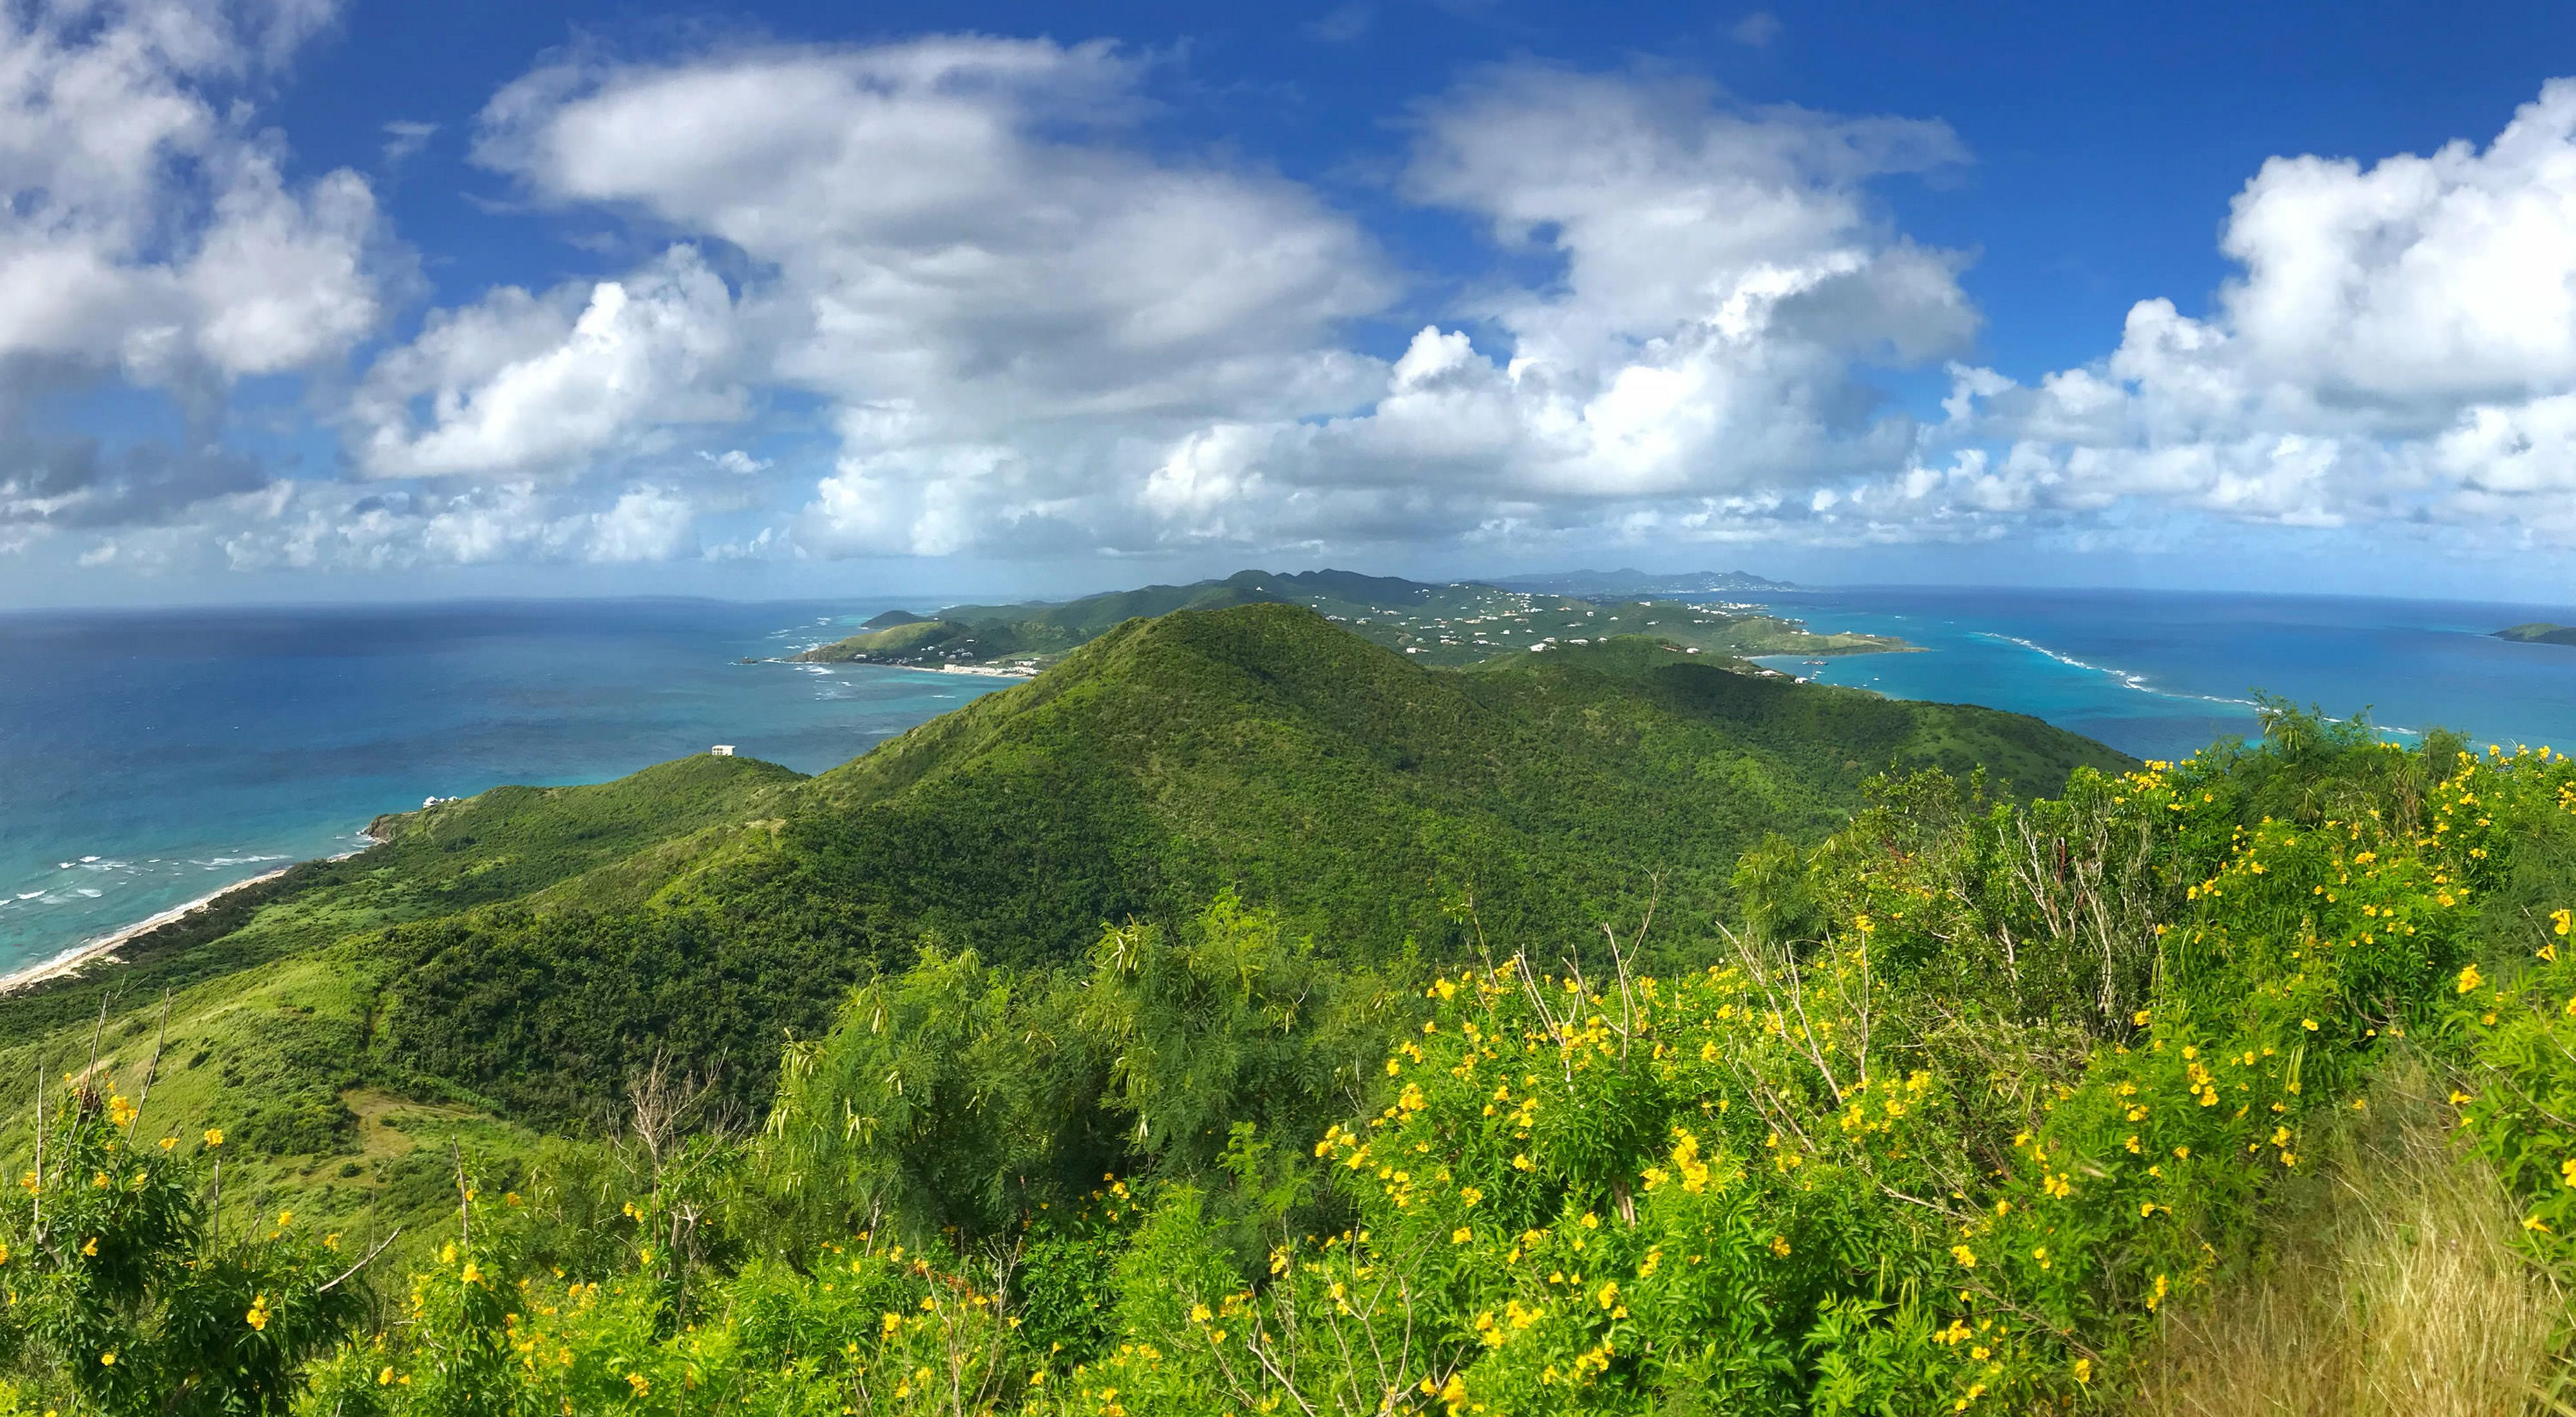 View from a St. Croix hilltop